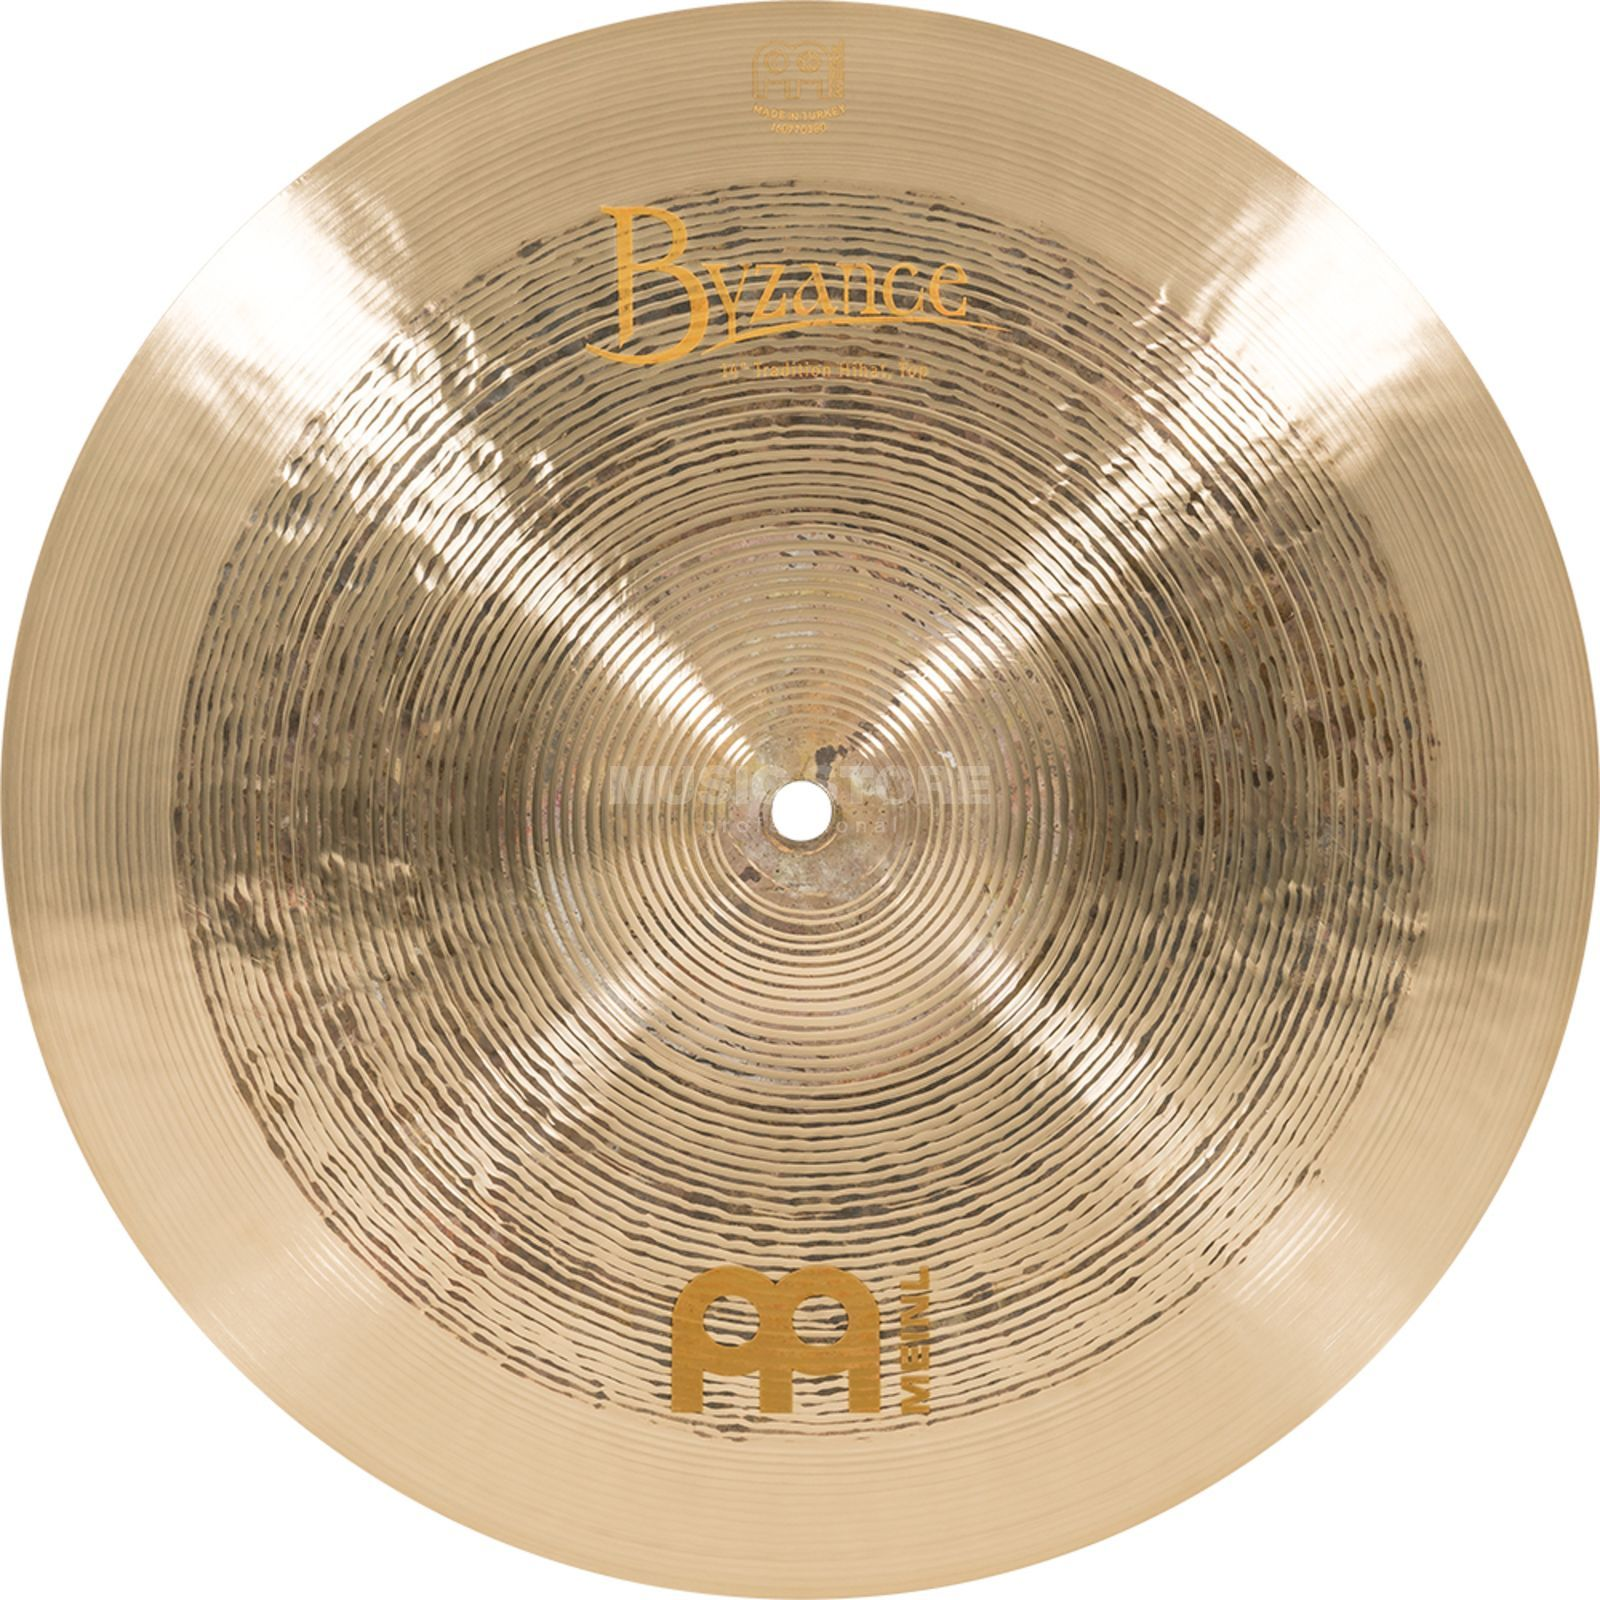 "Meinl Byzance Tradition HiHat 14"", B14TRH, Jazz Product Image"